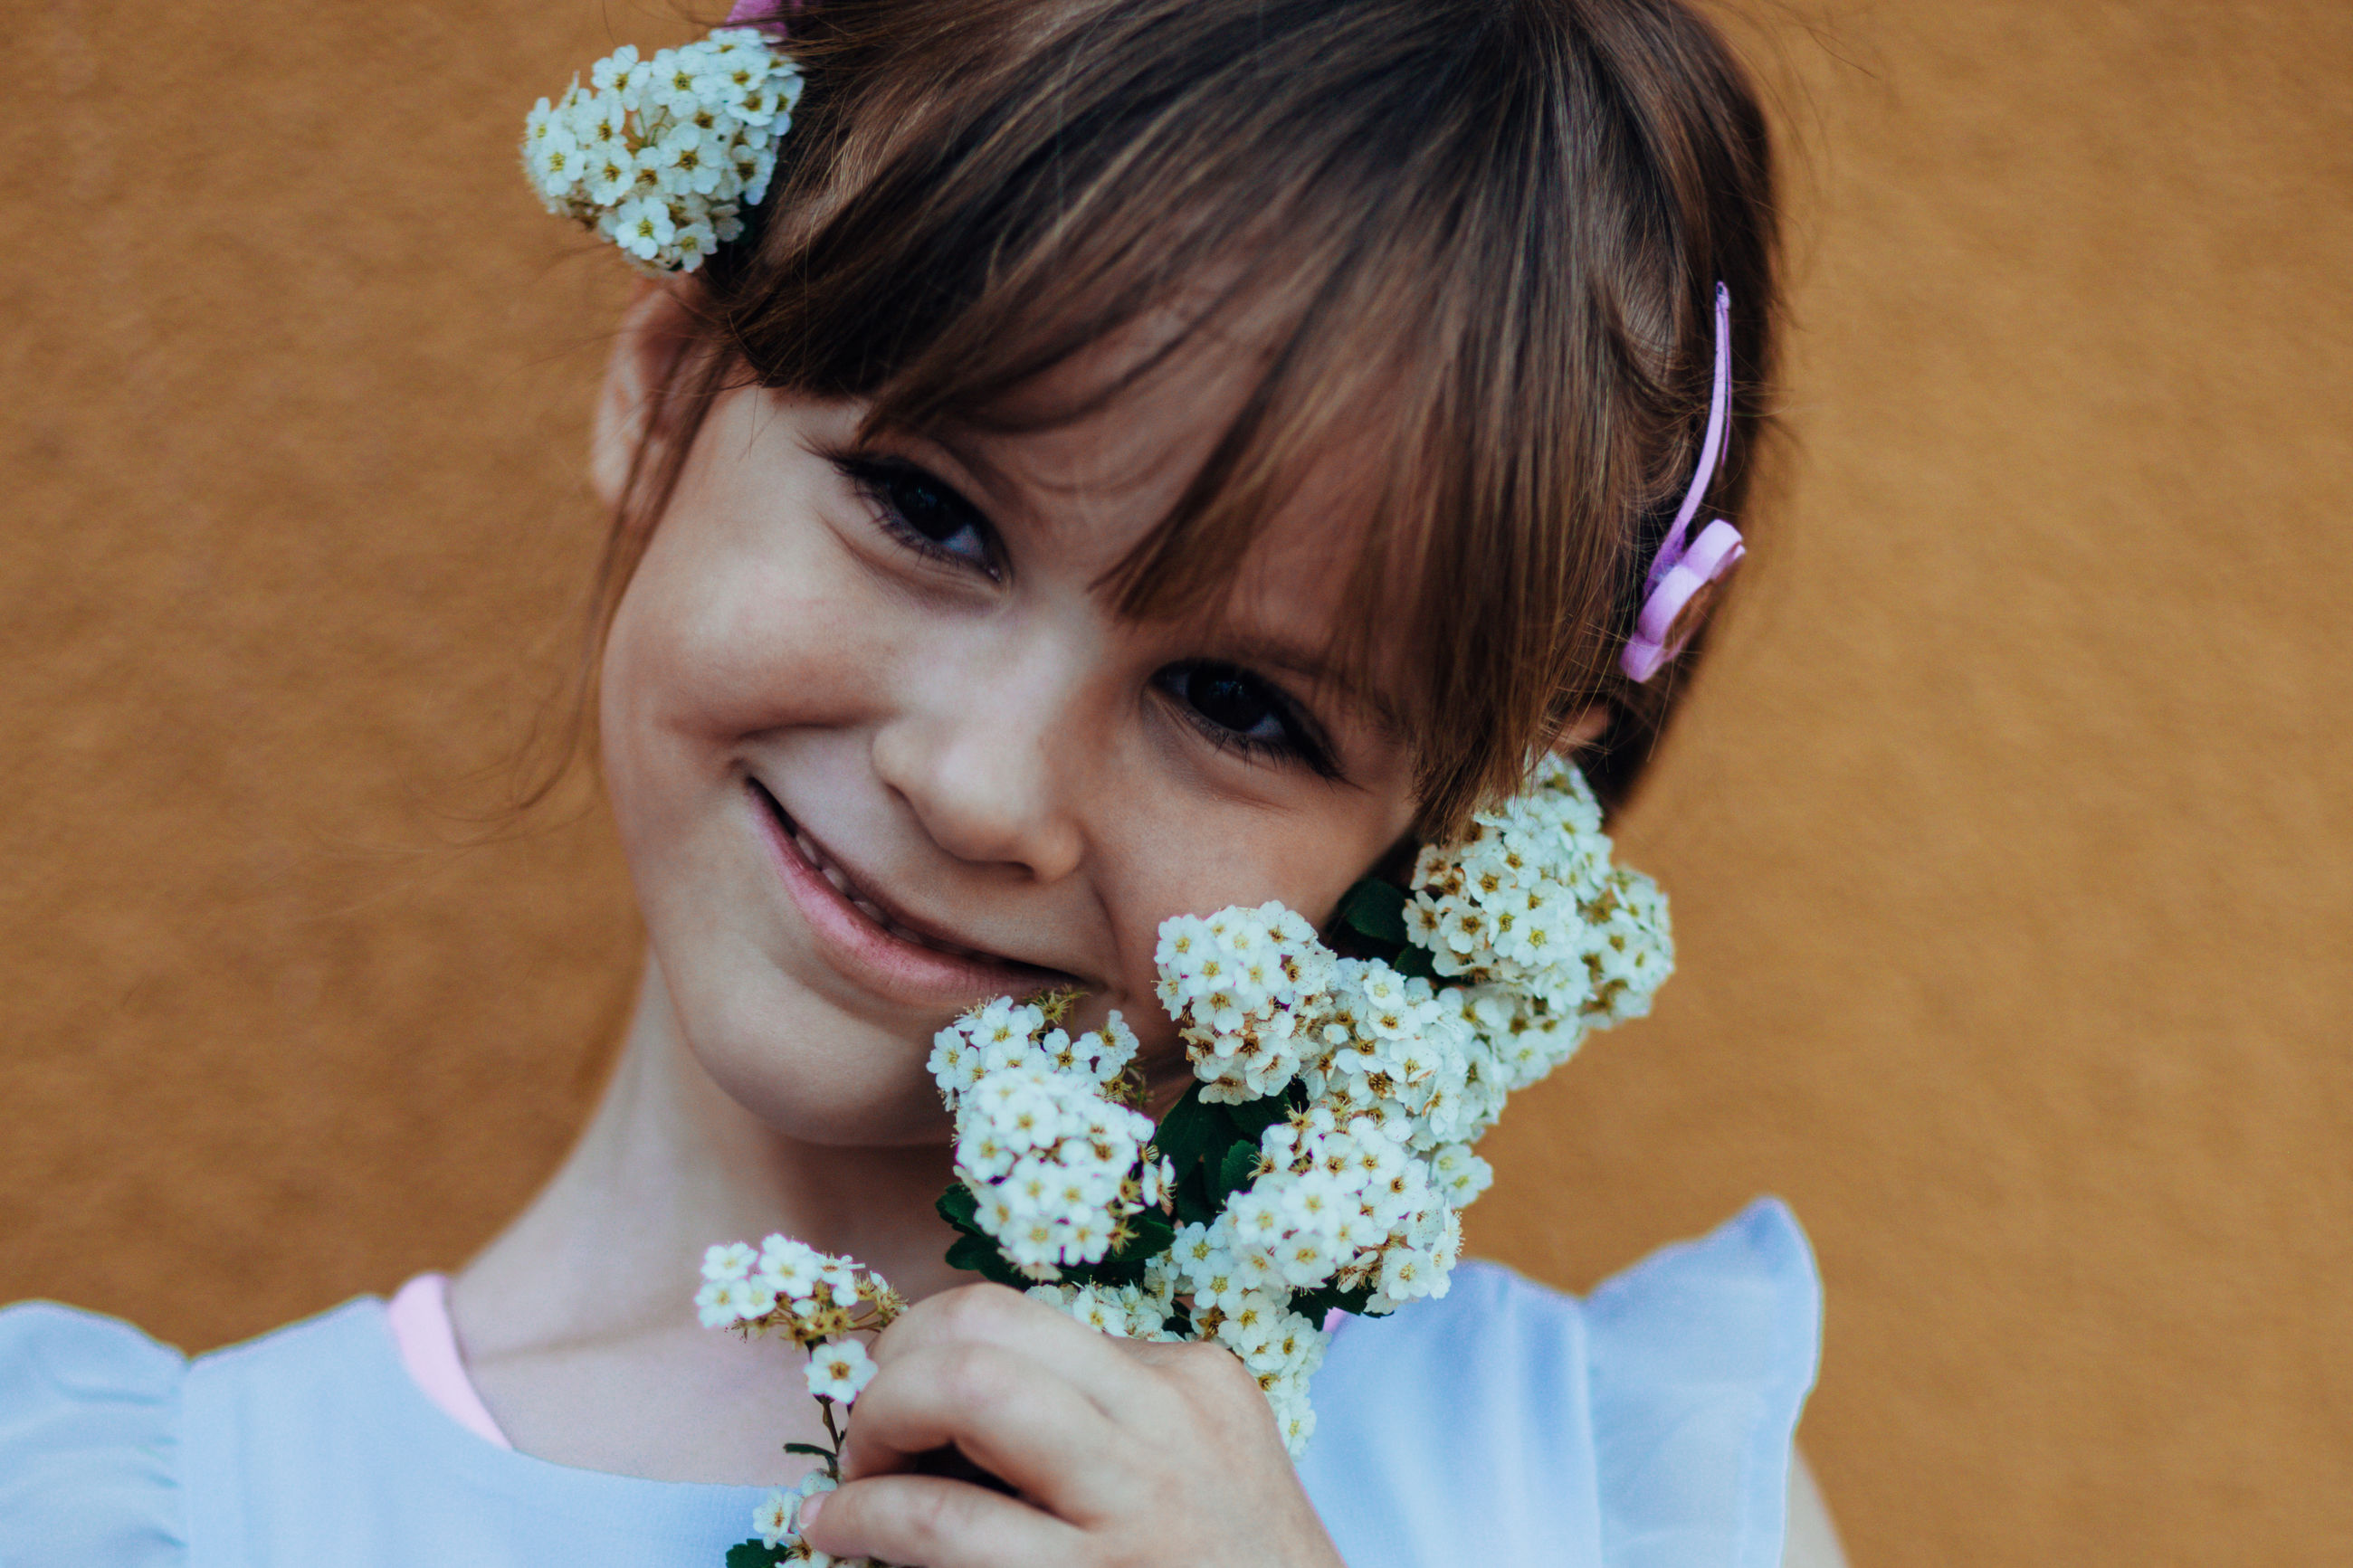 one person, portrait, looking at camera, childhood, smiling, flower, close-up, real people, holding, children only, girls, headshot, happiness, indoors, one girl only, freshness, food, child, day, people